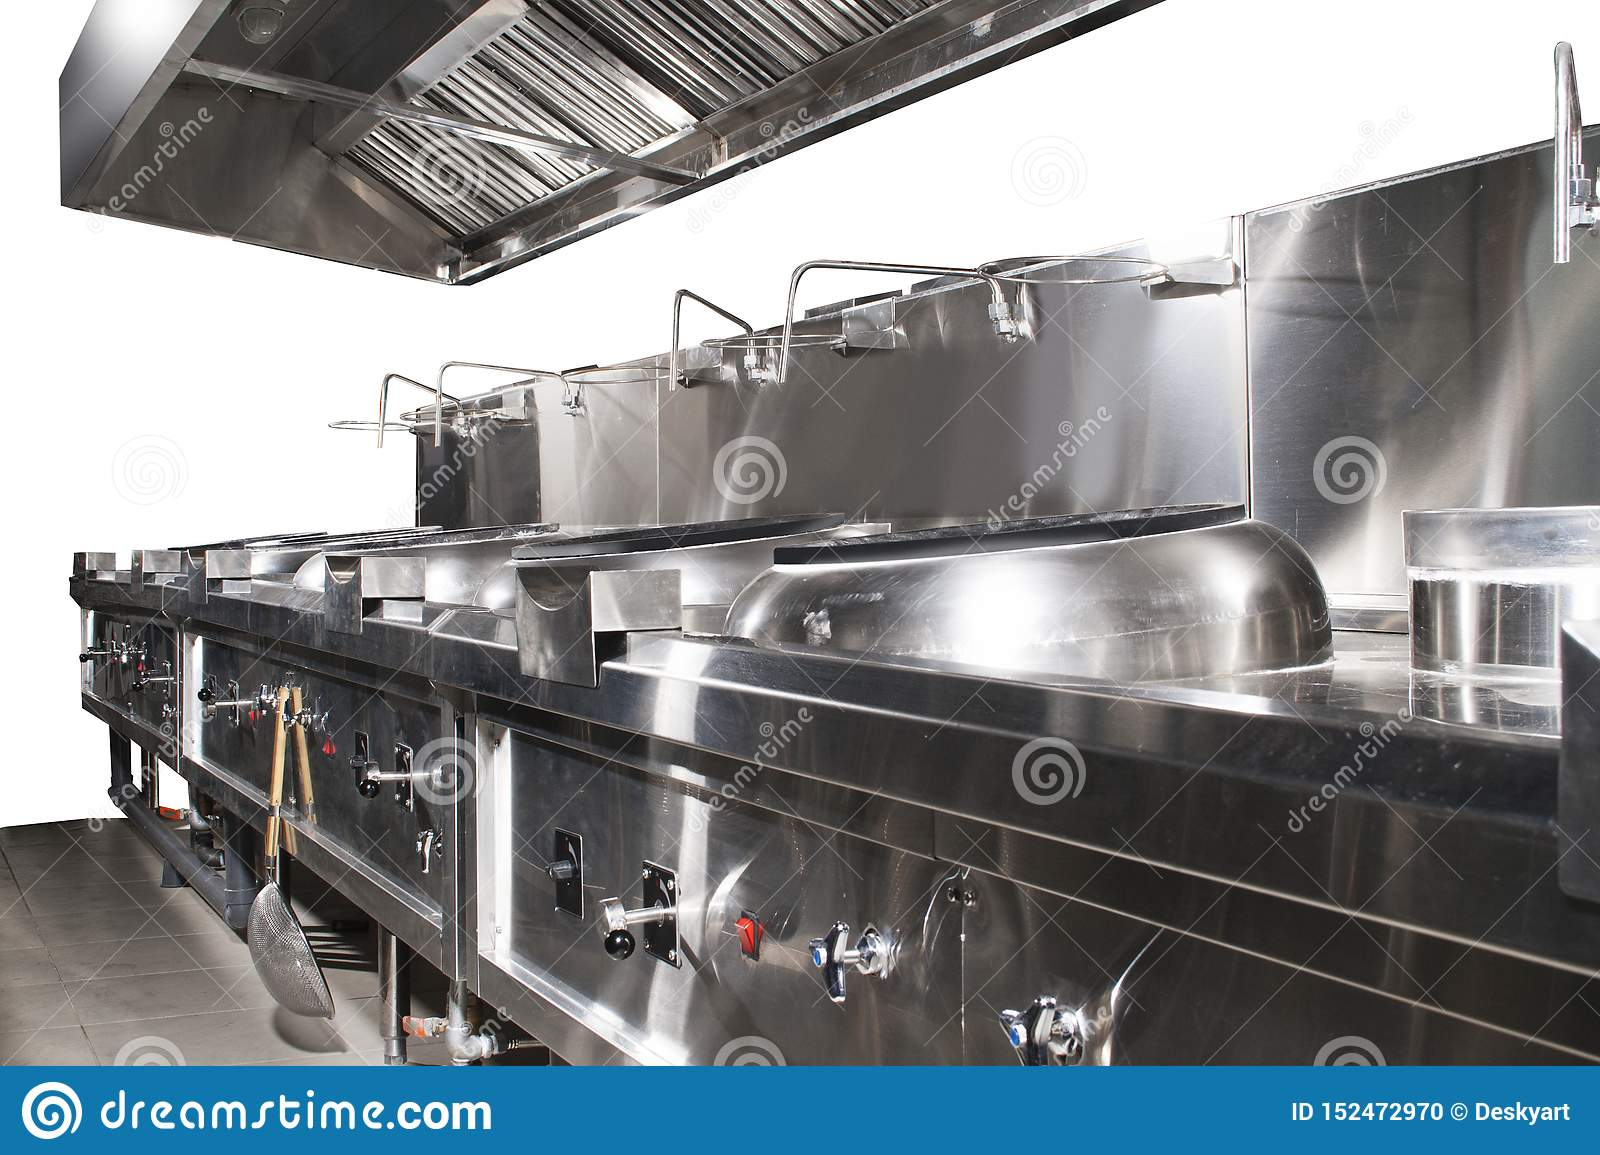 Modern Shiny And Clean Kitchen With Stainless Steel Kitchenware Stove Exhaust And Equipment For Restaurant Scale Cooking Stock Photo Image Of Healthy Sink 152472970